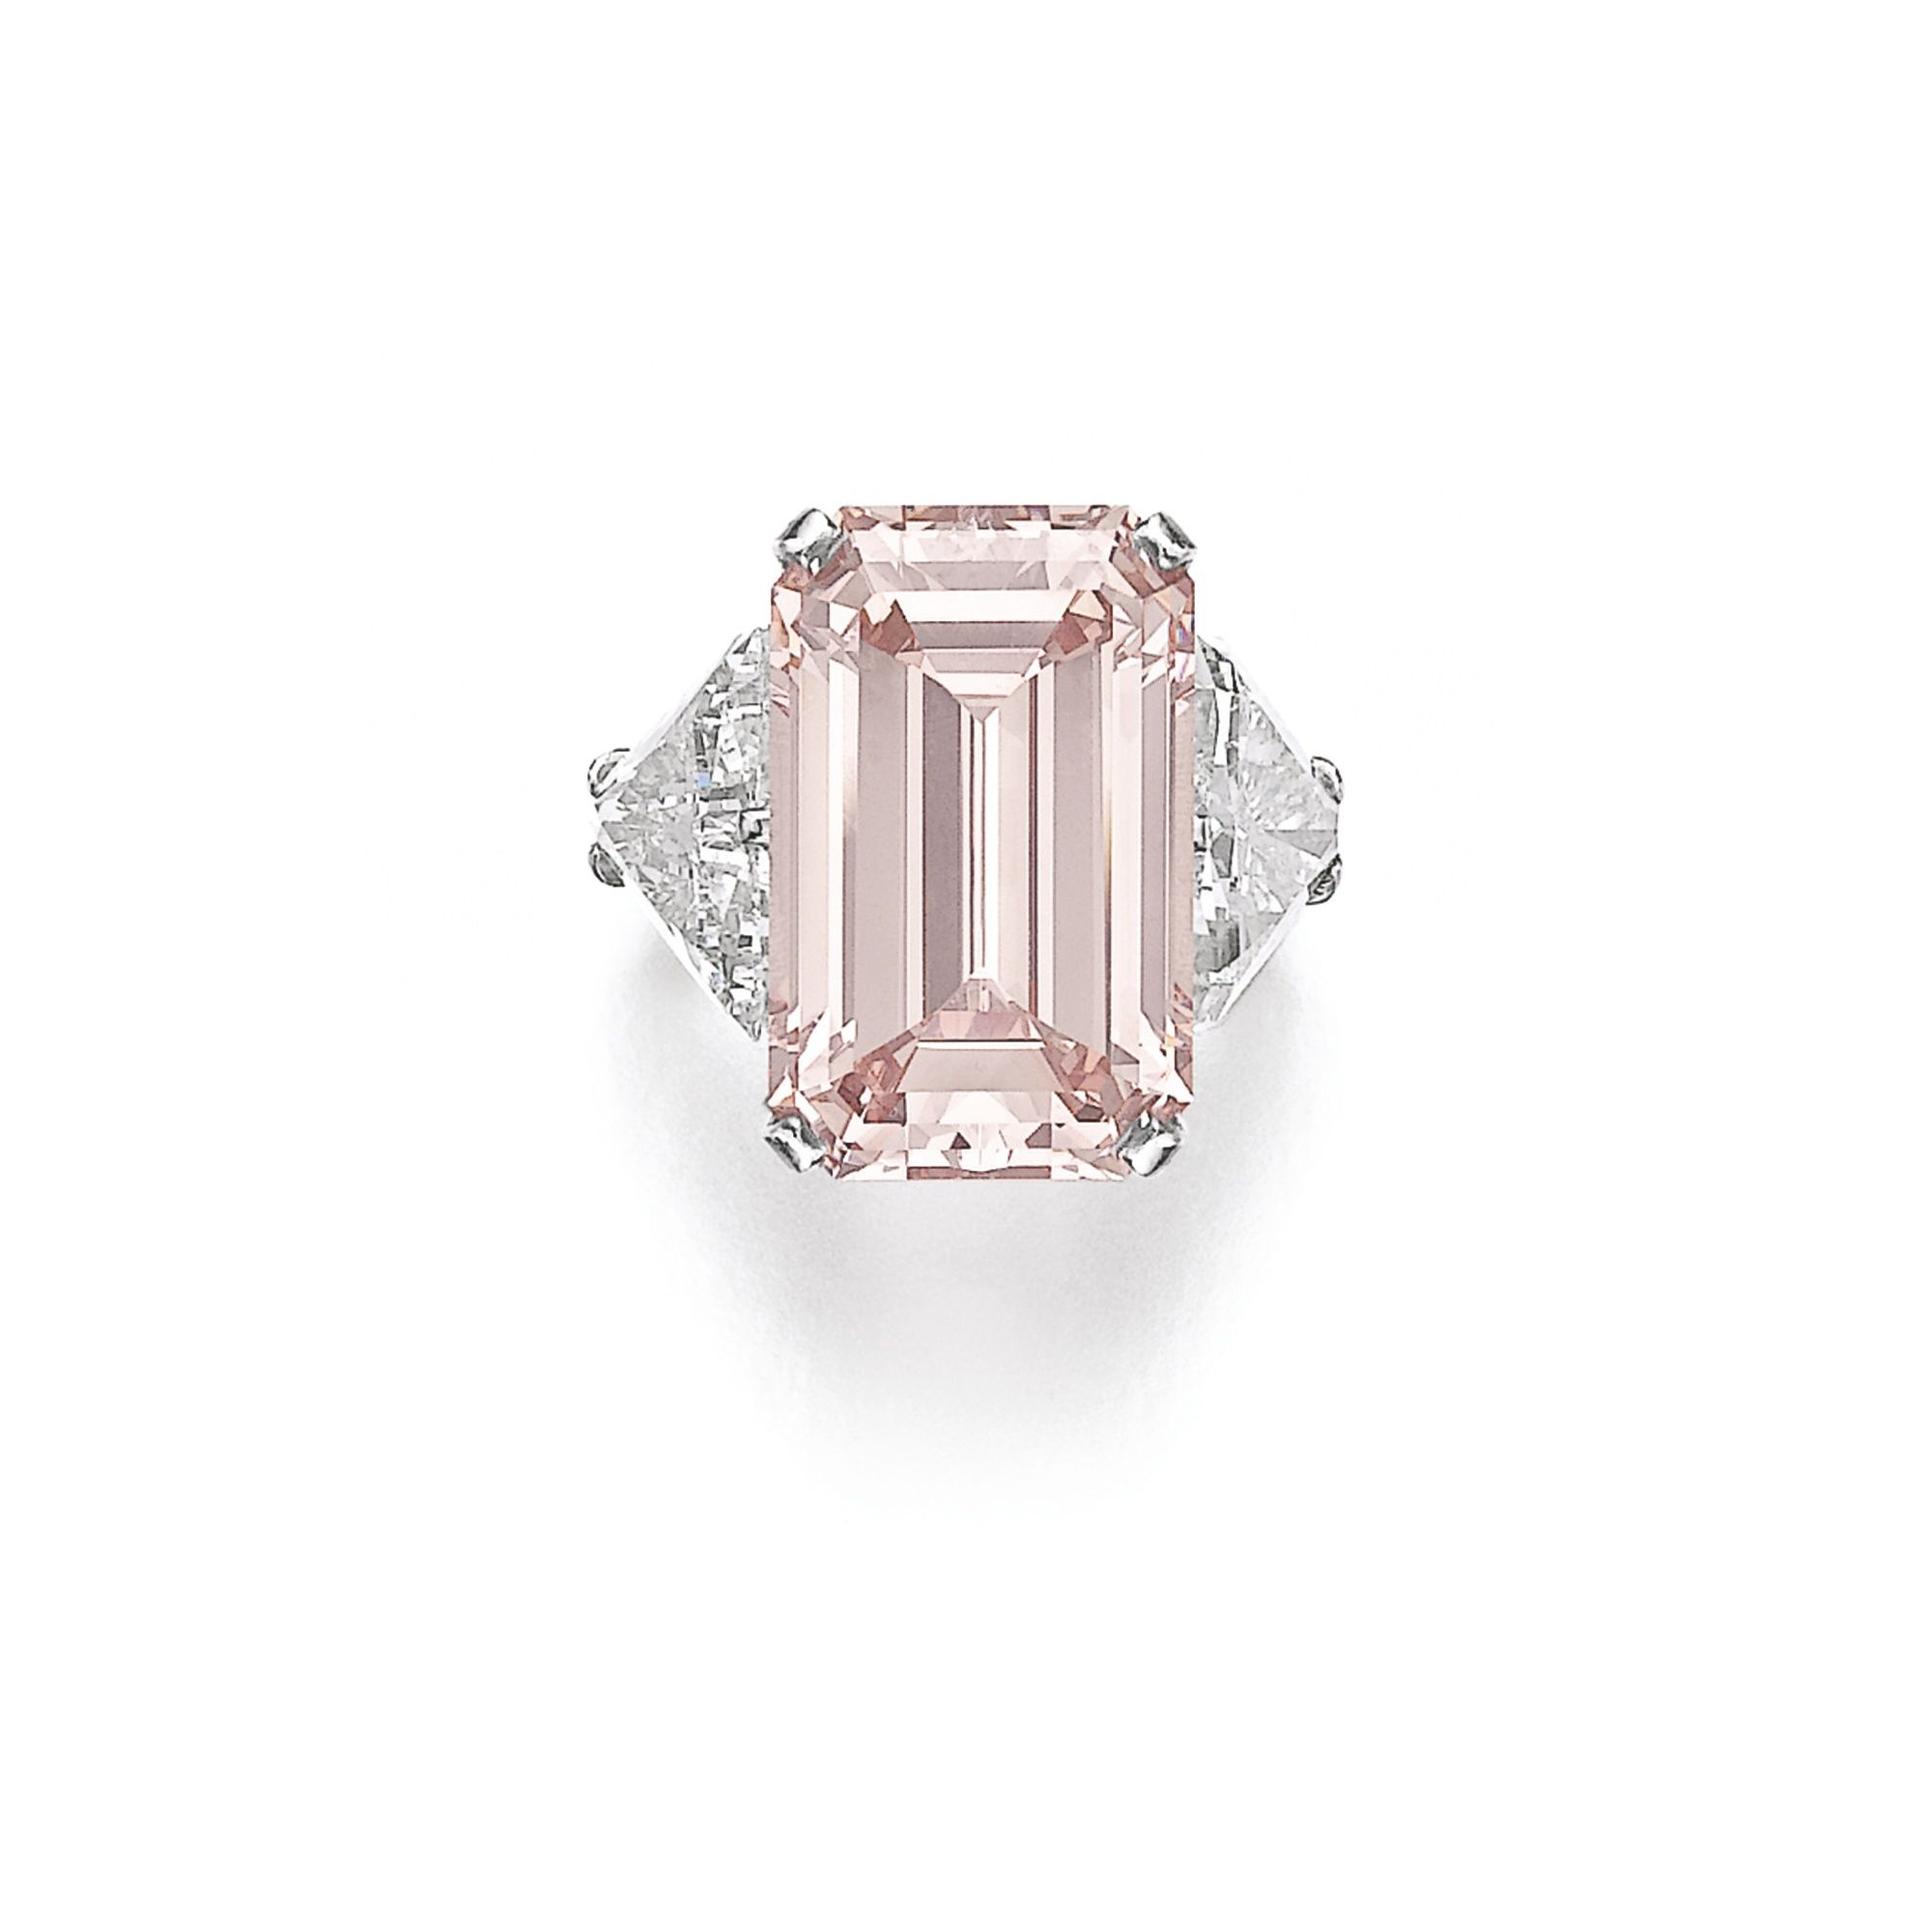 modified pink impressive an cornered rings pinterest pin diamond rectangular approximately colored fancy carats s christie just intense a weighing diamonds cut set with ring